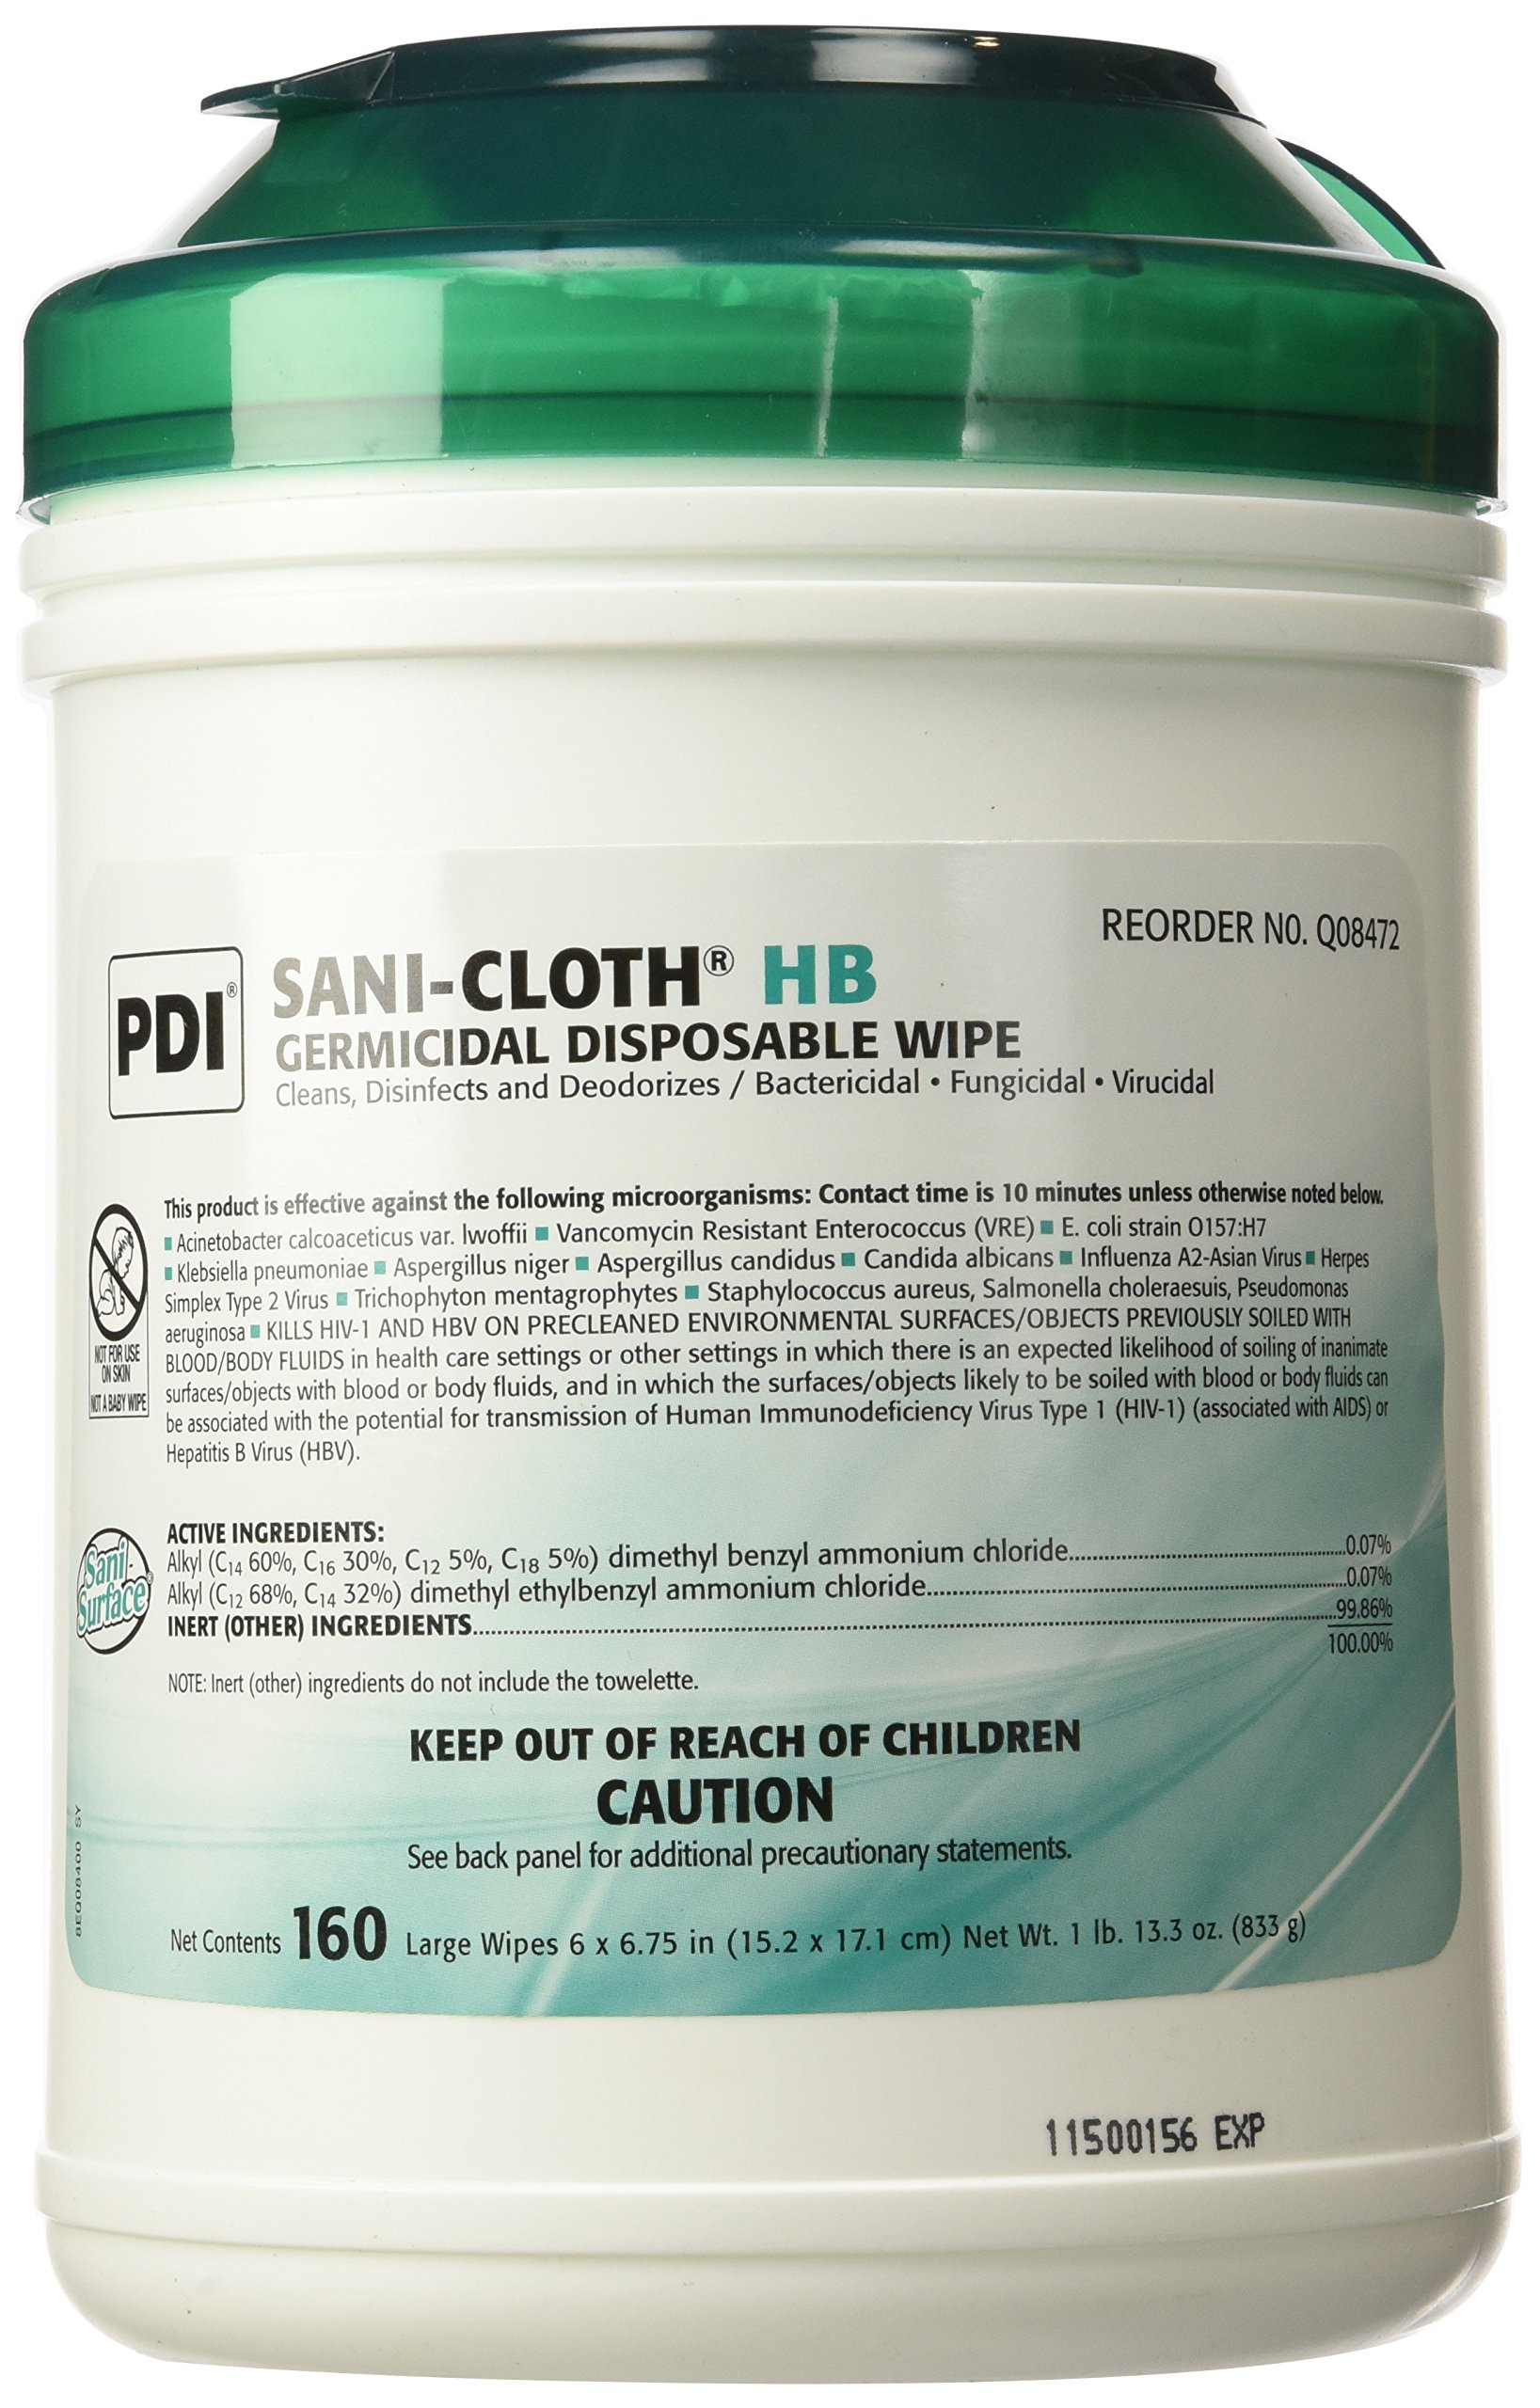 PDI Sani-cloth HB Germicidal Disposable Wipes 6'' X 6-3/4'' (1 Pack of 160) - 13.3 oz.